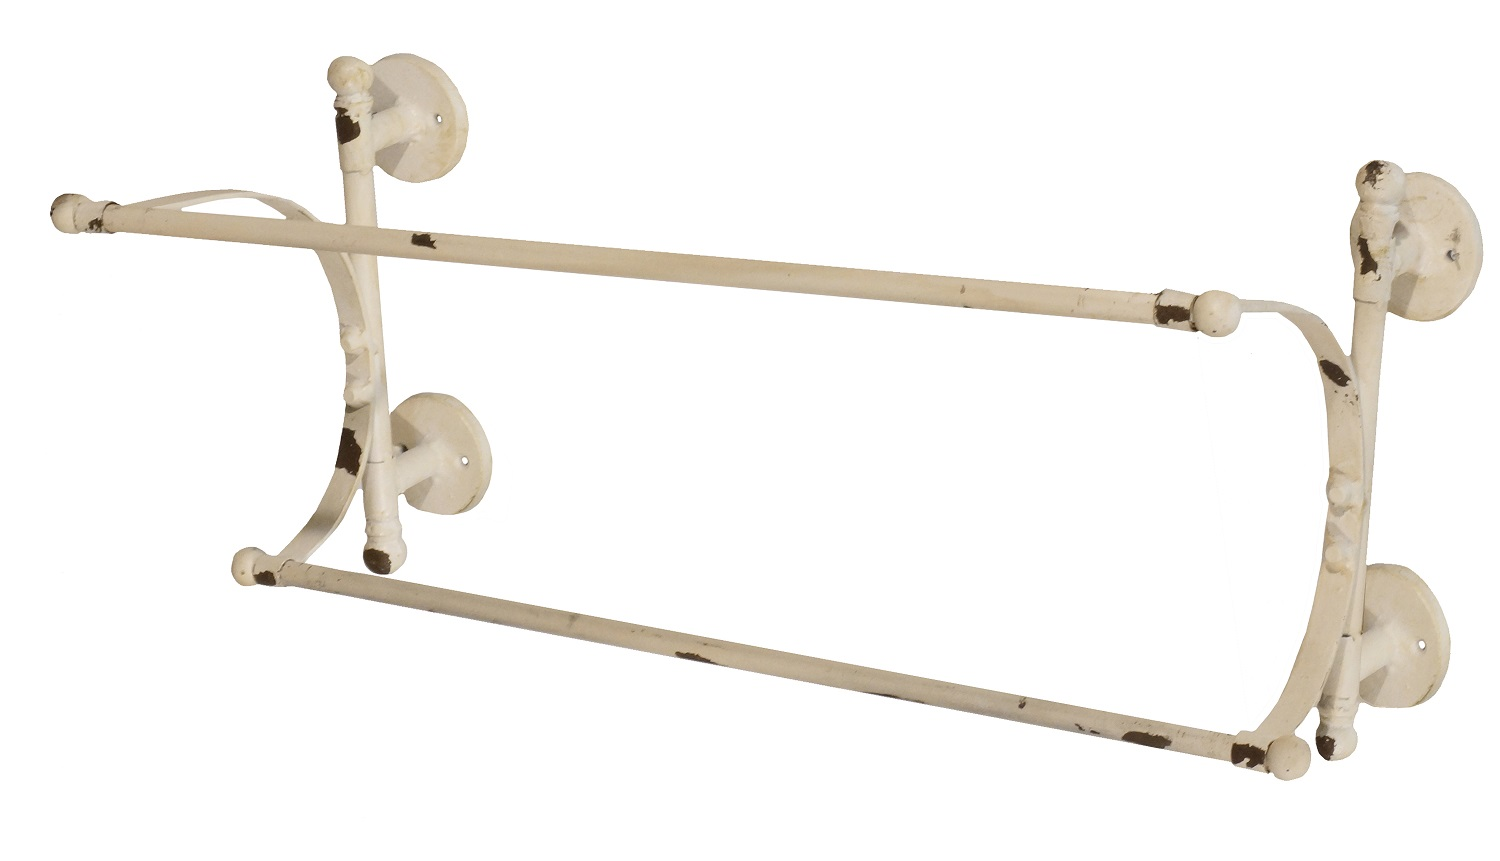 This Rustic Antique Inspired Double Towel Bar Is Painted White And Distressed To Ear Aged Great In Your Shabby Chic Room